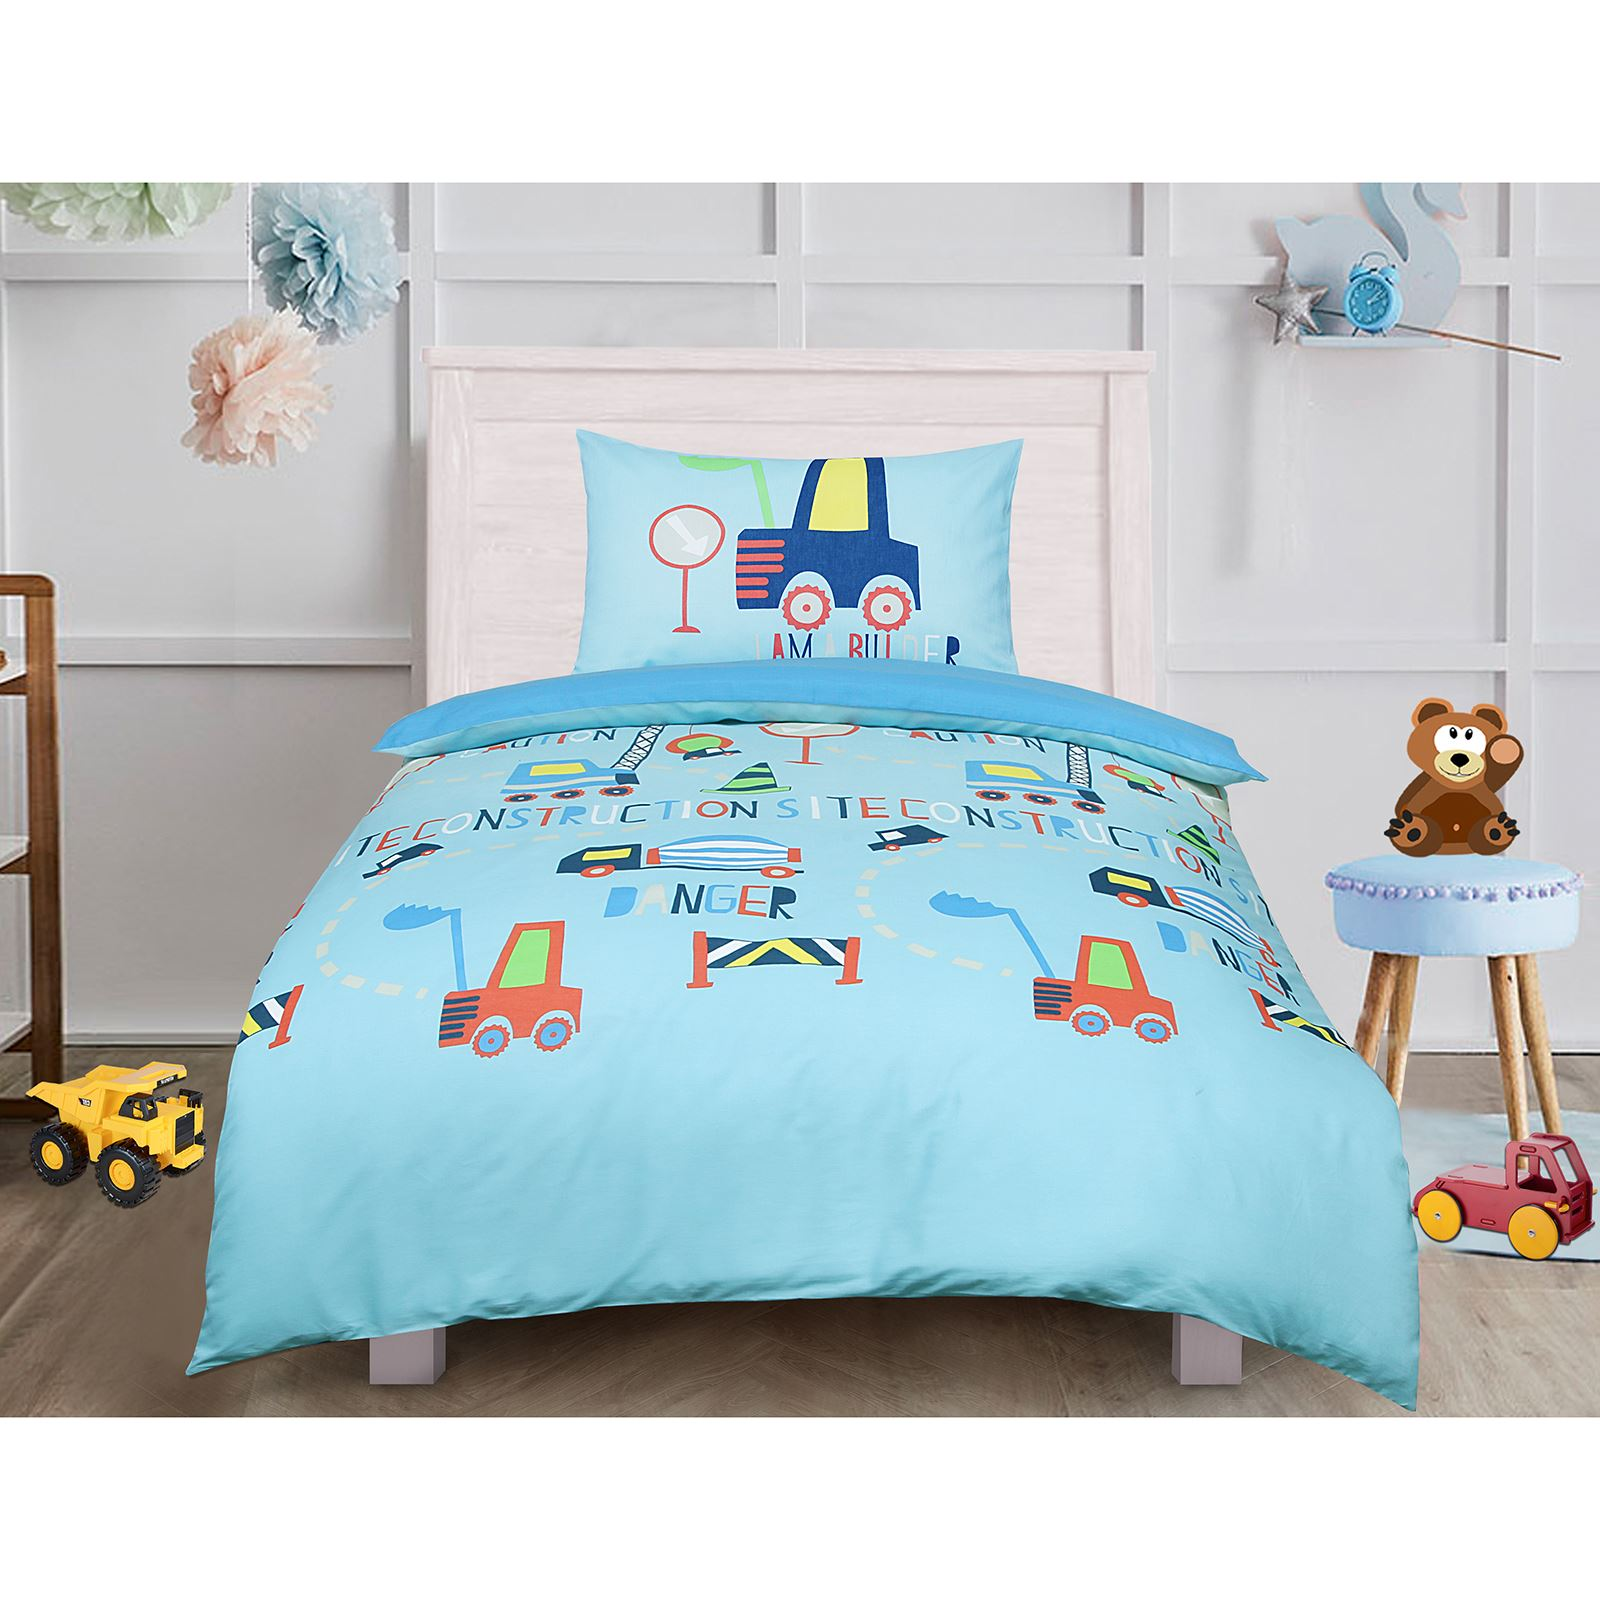 Children-Teenage-Kids-Boys-Girls-Single-Quilt-Duvet-Cover-Pillowcase-Bedding-Set thumbnail 12